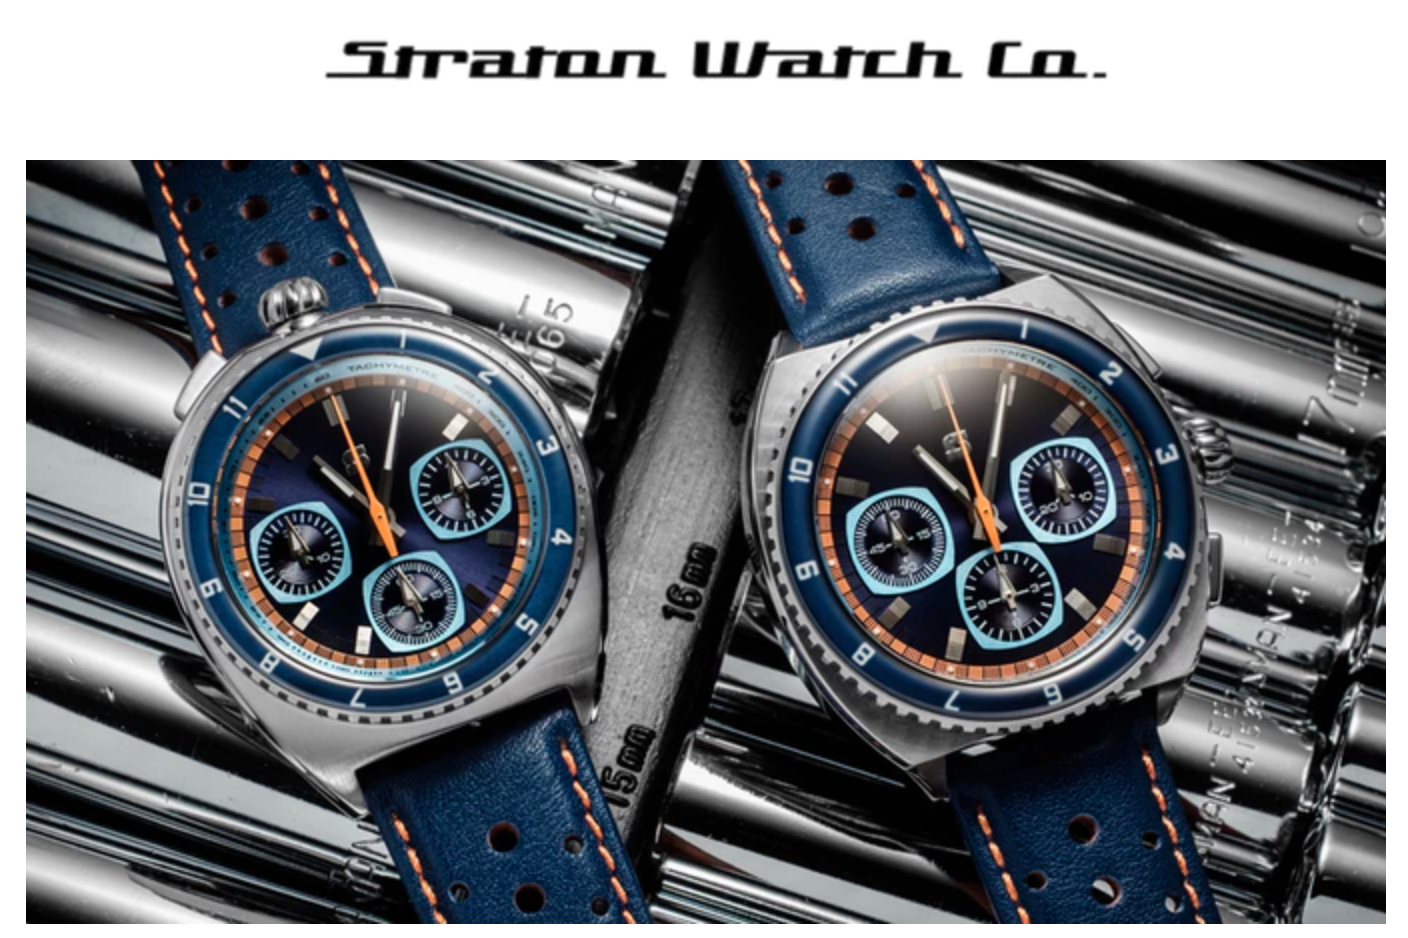 Straton_Legera_watch_-_bold_retro_styling__by_Straton_Watch_Co__—_Kickstarter.png